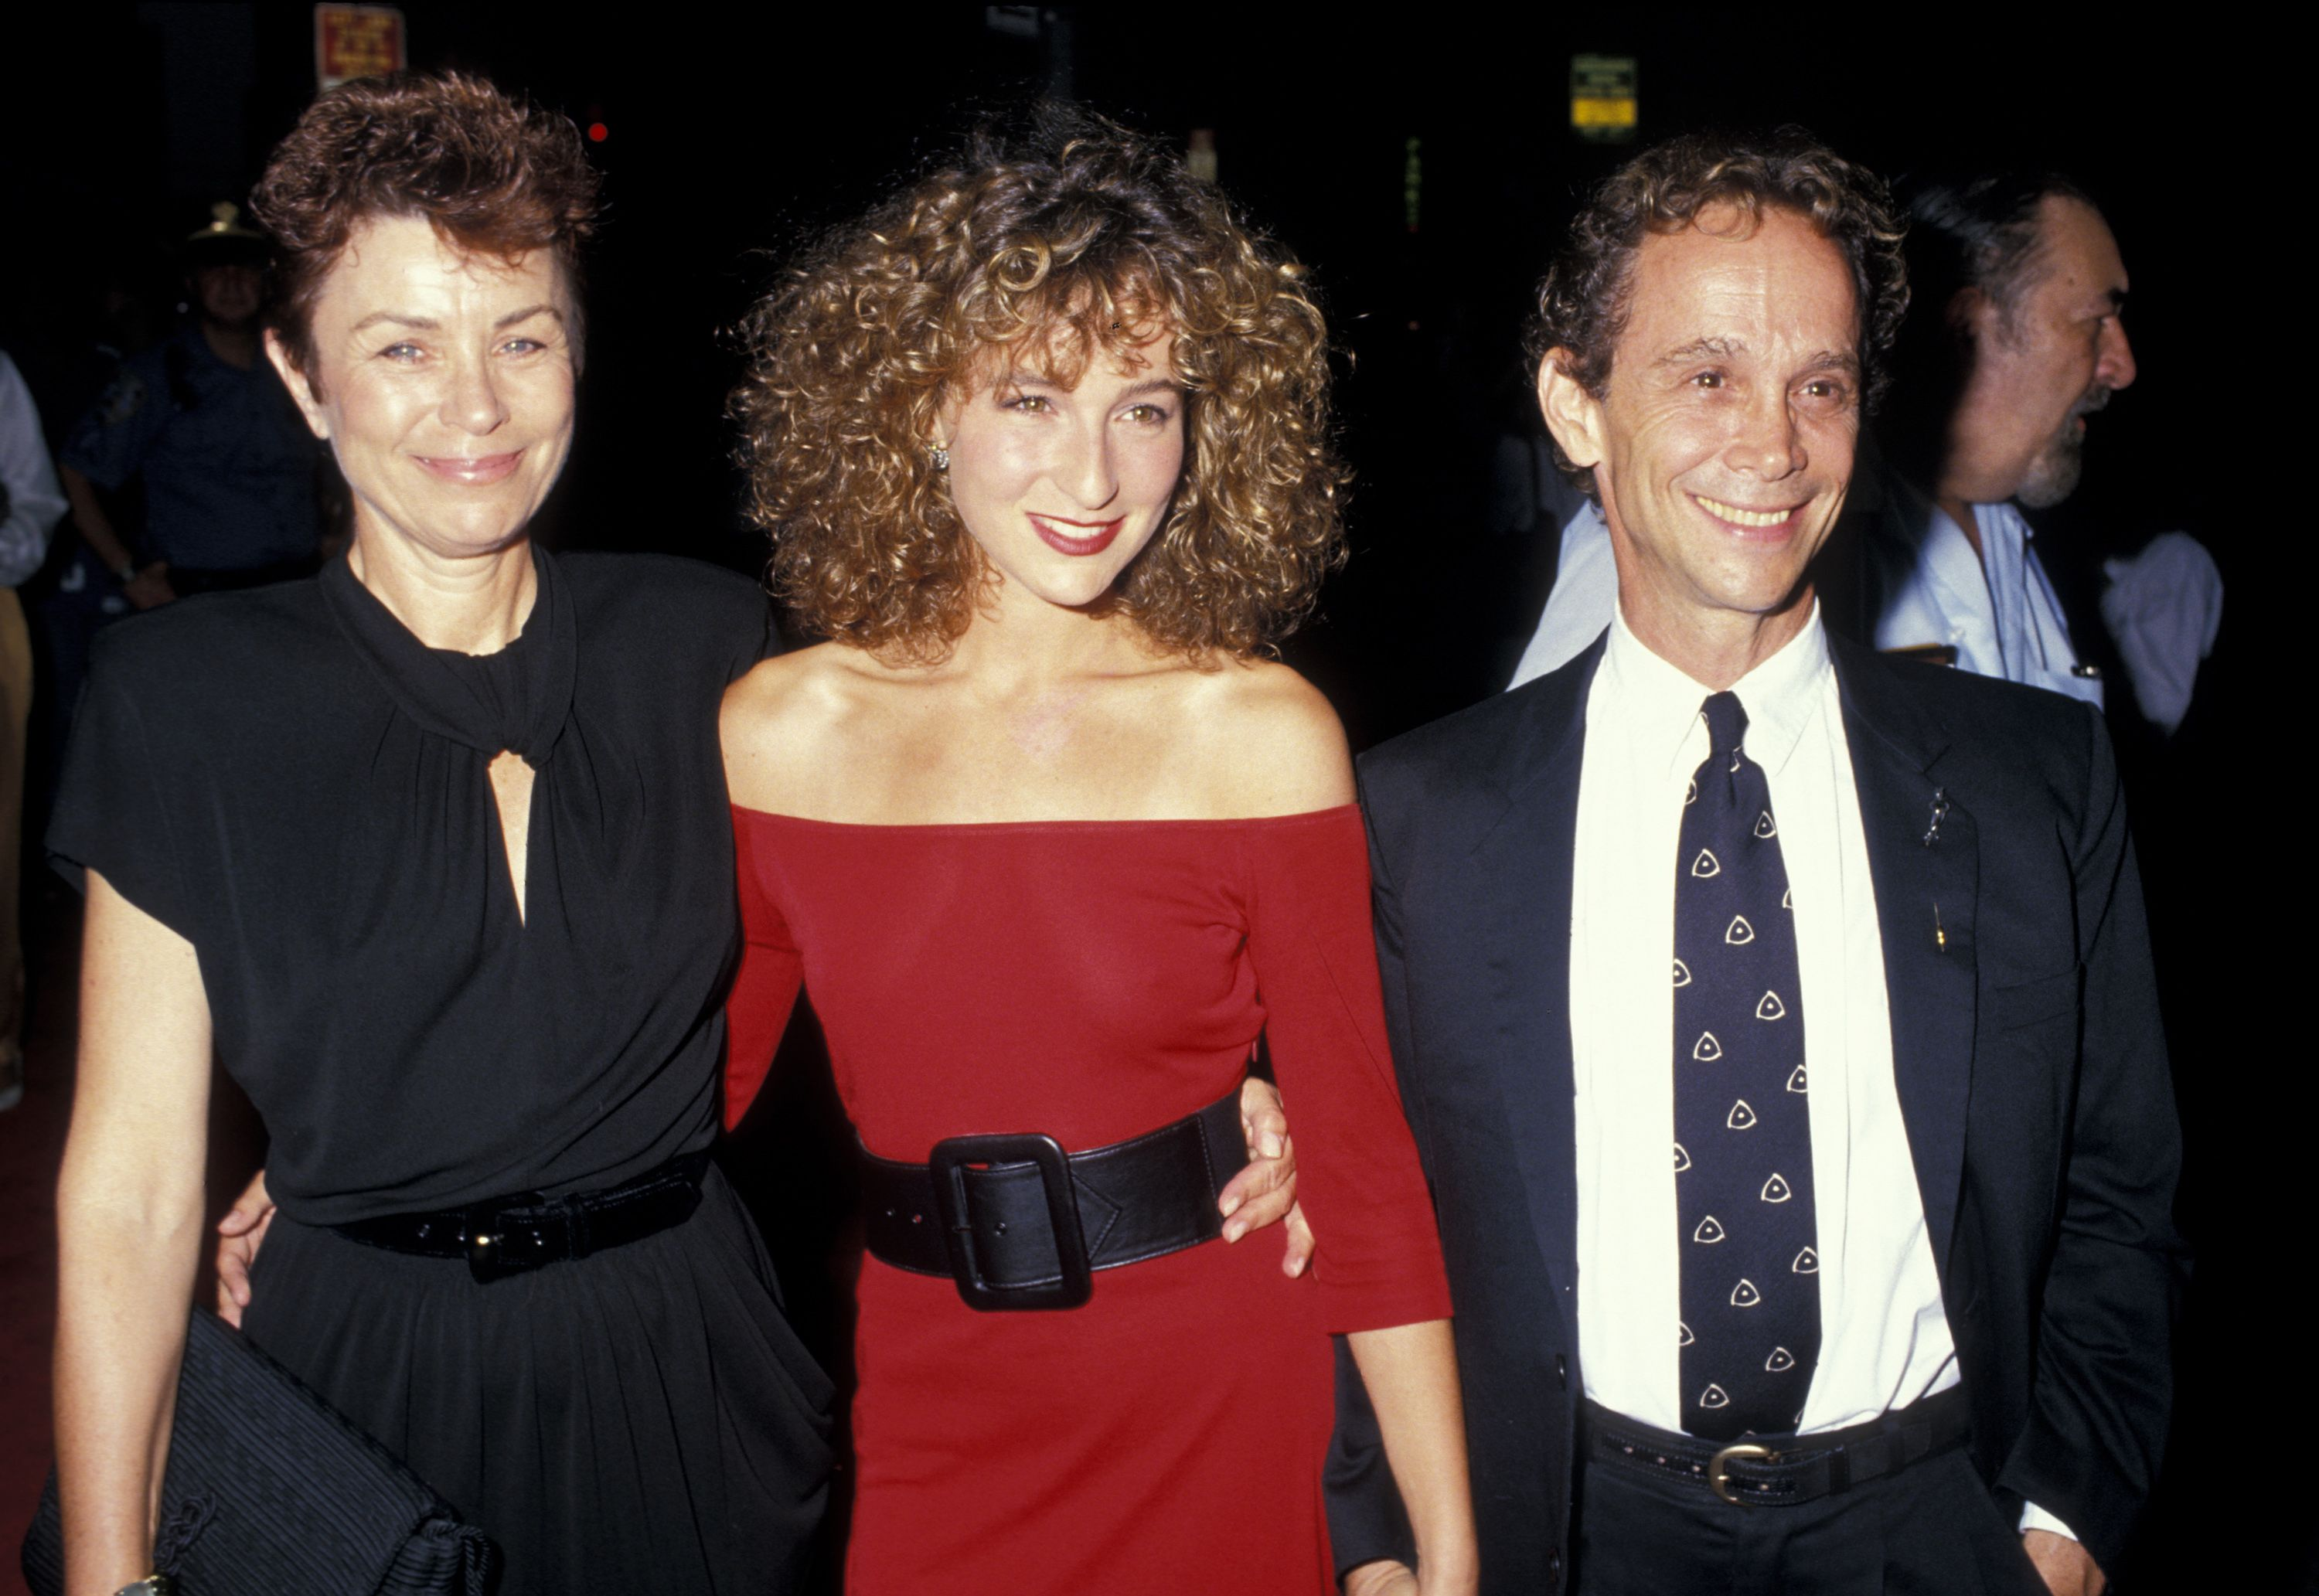 """Jo Wilder, Jennifer Grey, and Joel Grey at the premiere of """"Dirty Dancing"""" in 1987 in New York 